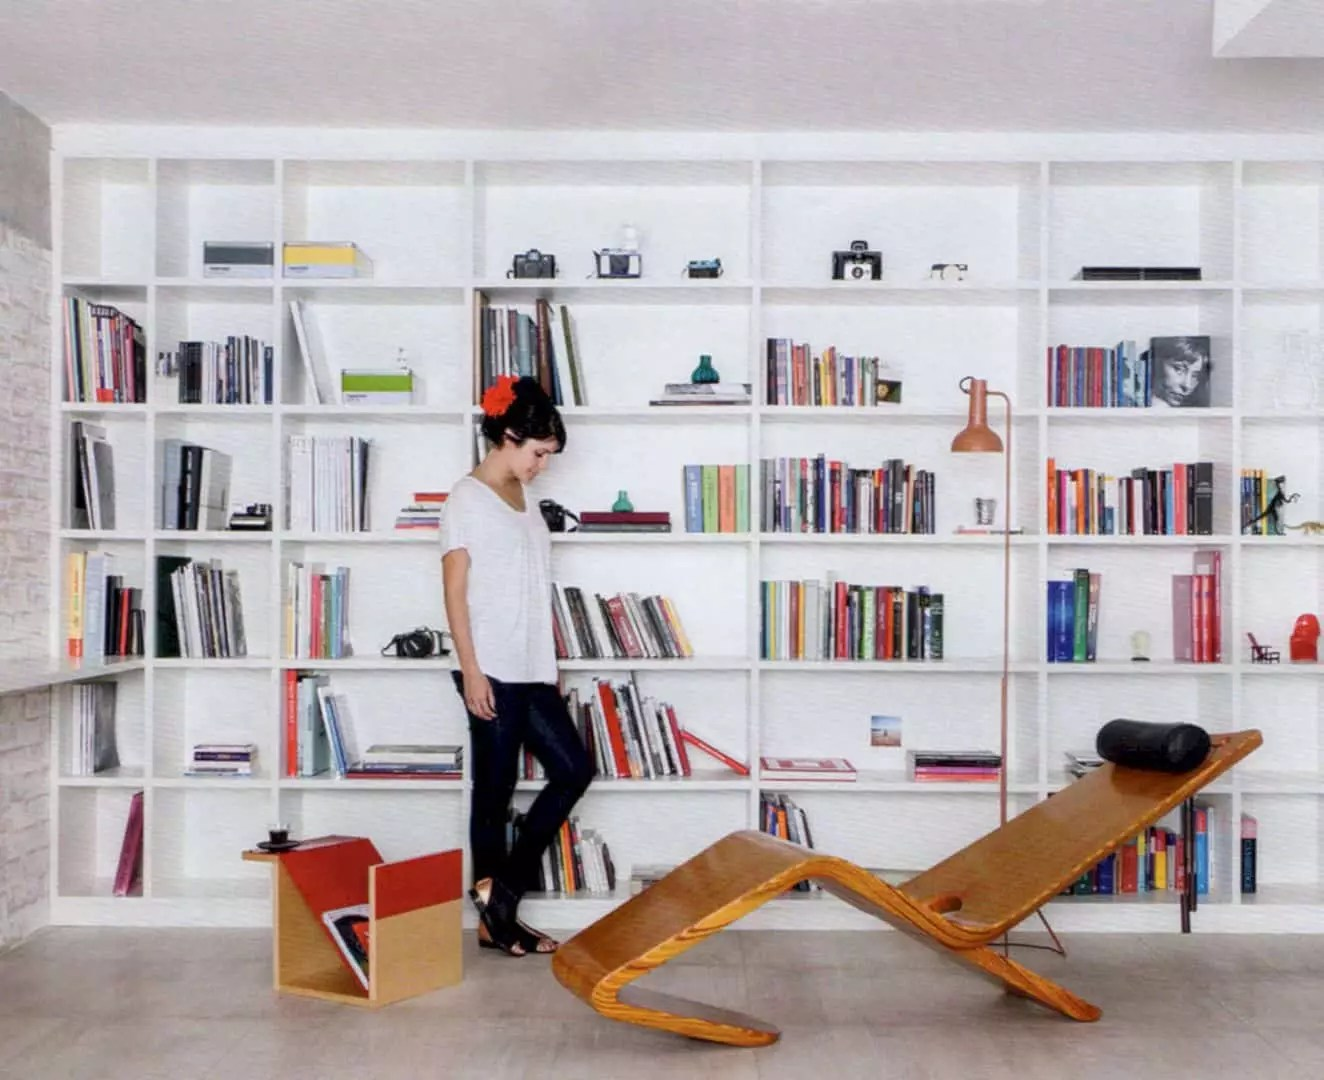 Sunflower Apartment: An Elegant Interior of Apartment with Colorful Furniture